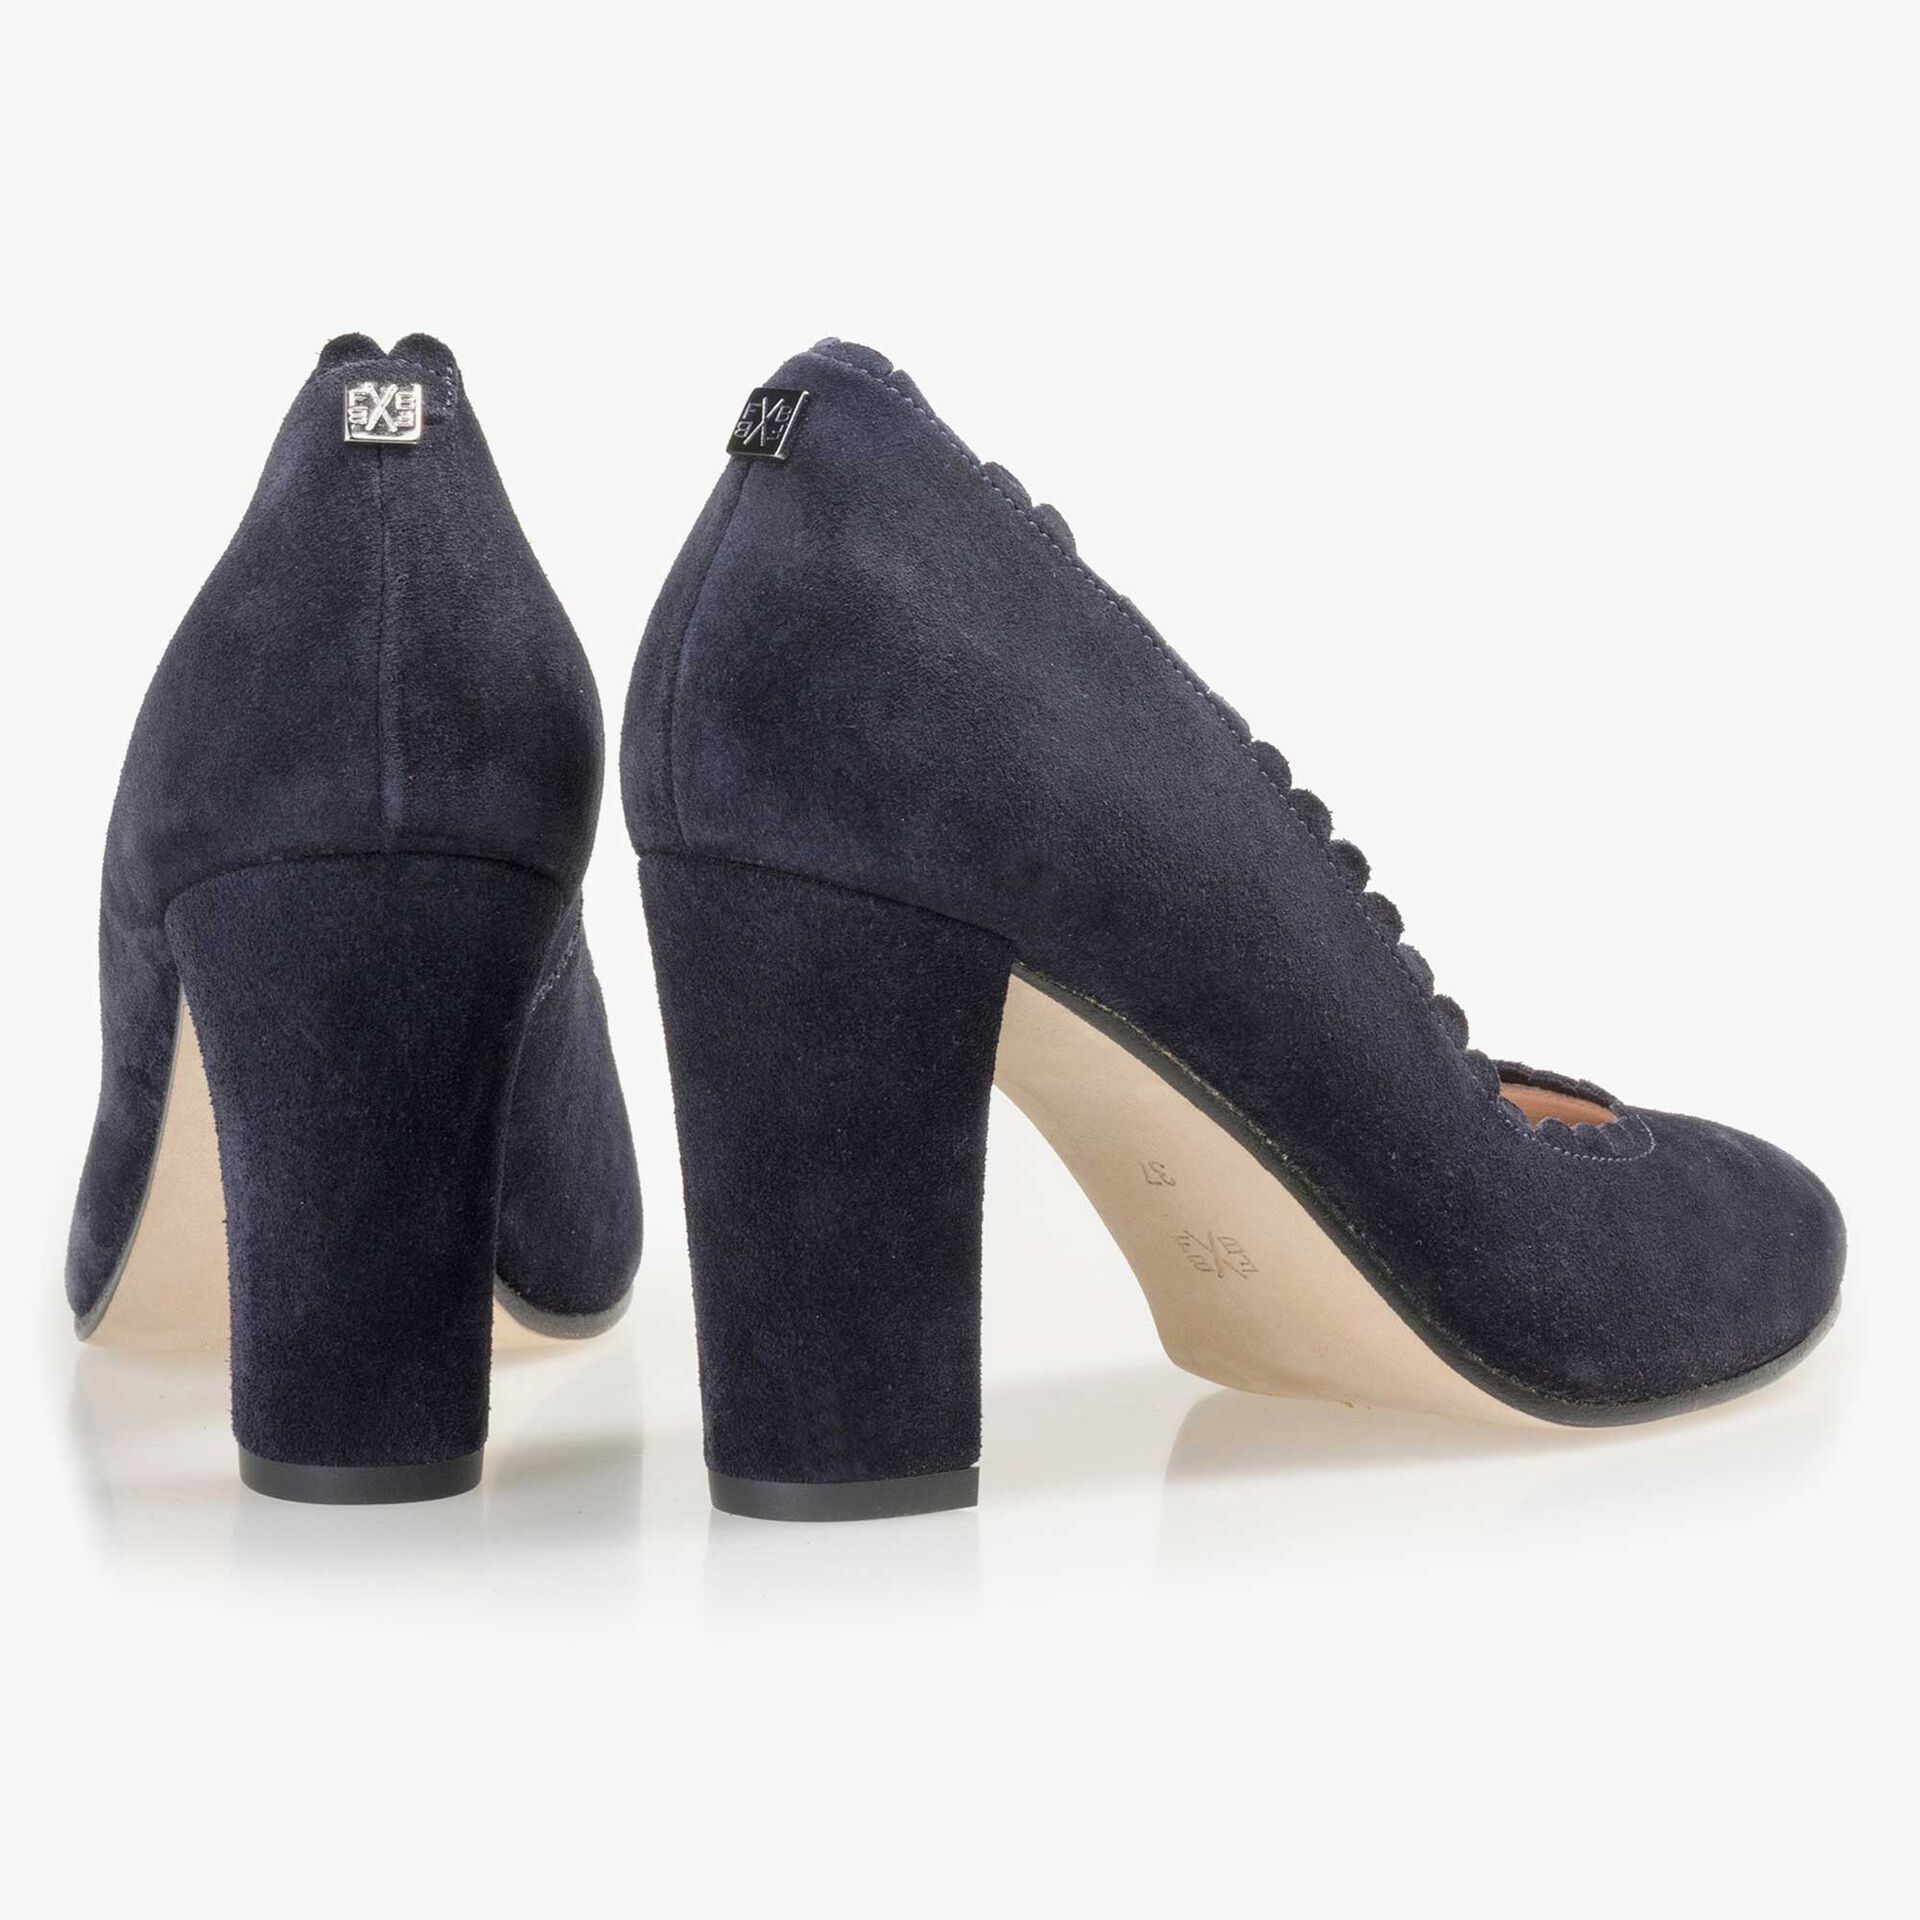 Floris van Bommel dark blue suede leather pumps